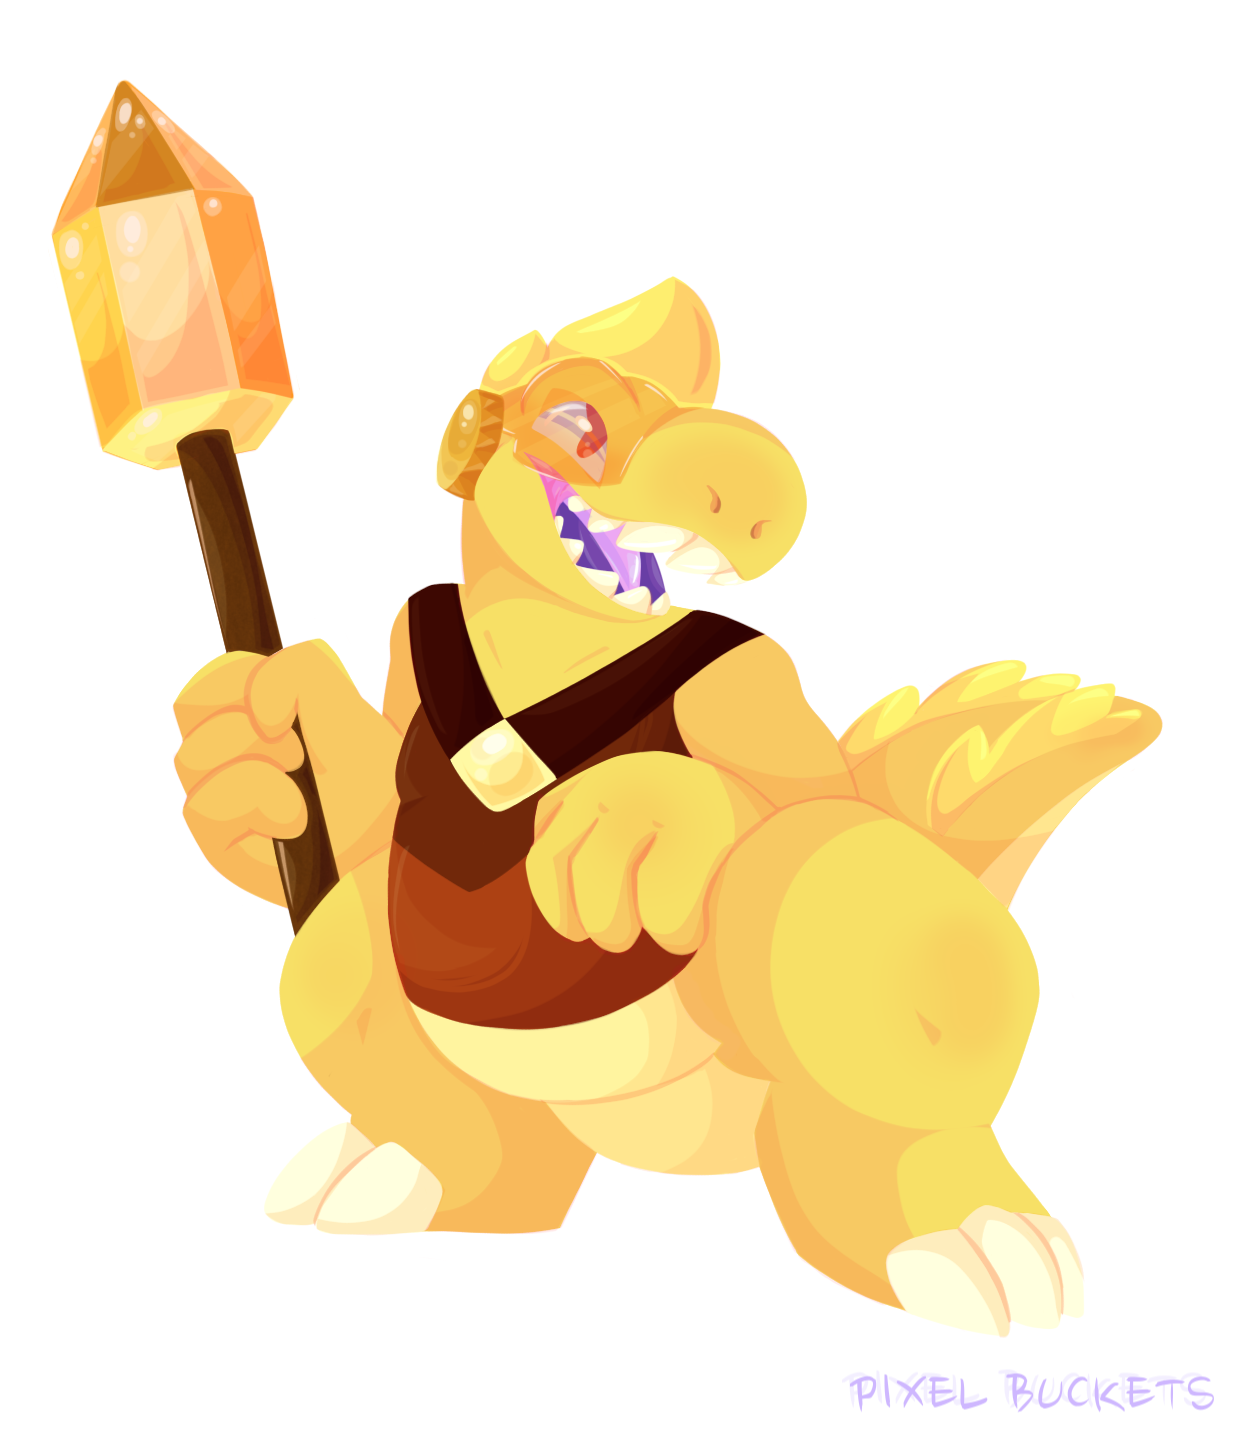 """. • ° *✨DINO-PAZ✨ * ° • .""""This was a silly idea I got while listening to Volcano, it started as a dumb quick doodle that I grew up liking a little way too much. I've worked on it for 3 days and in all..."""